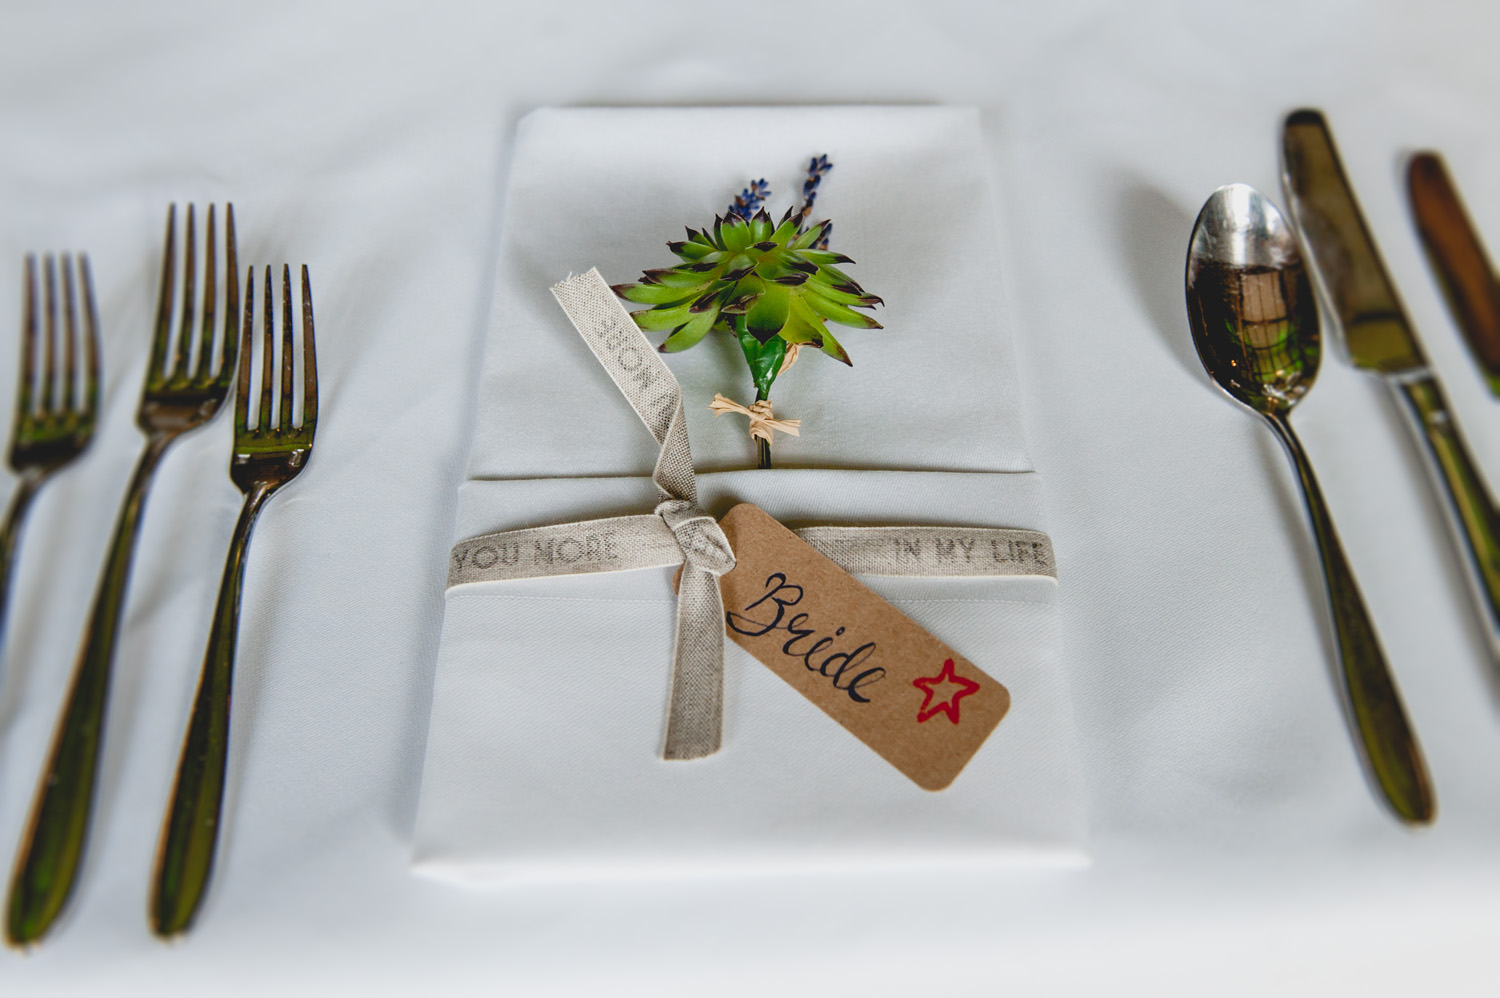 Notley Abbey Tablescape